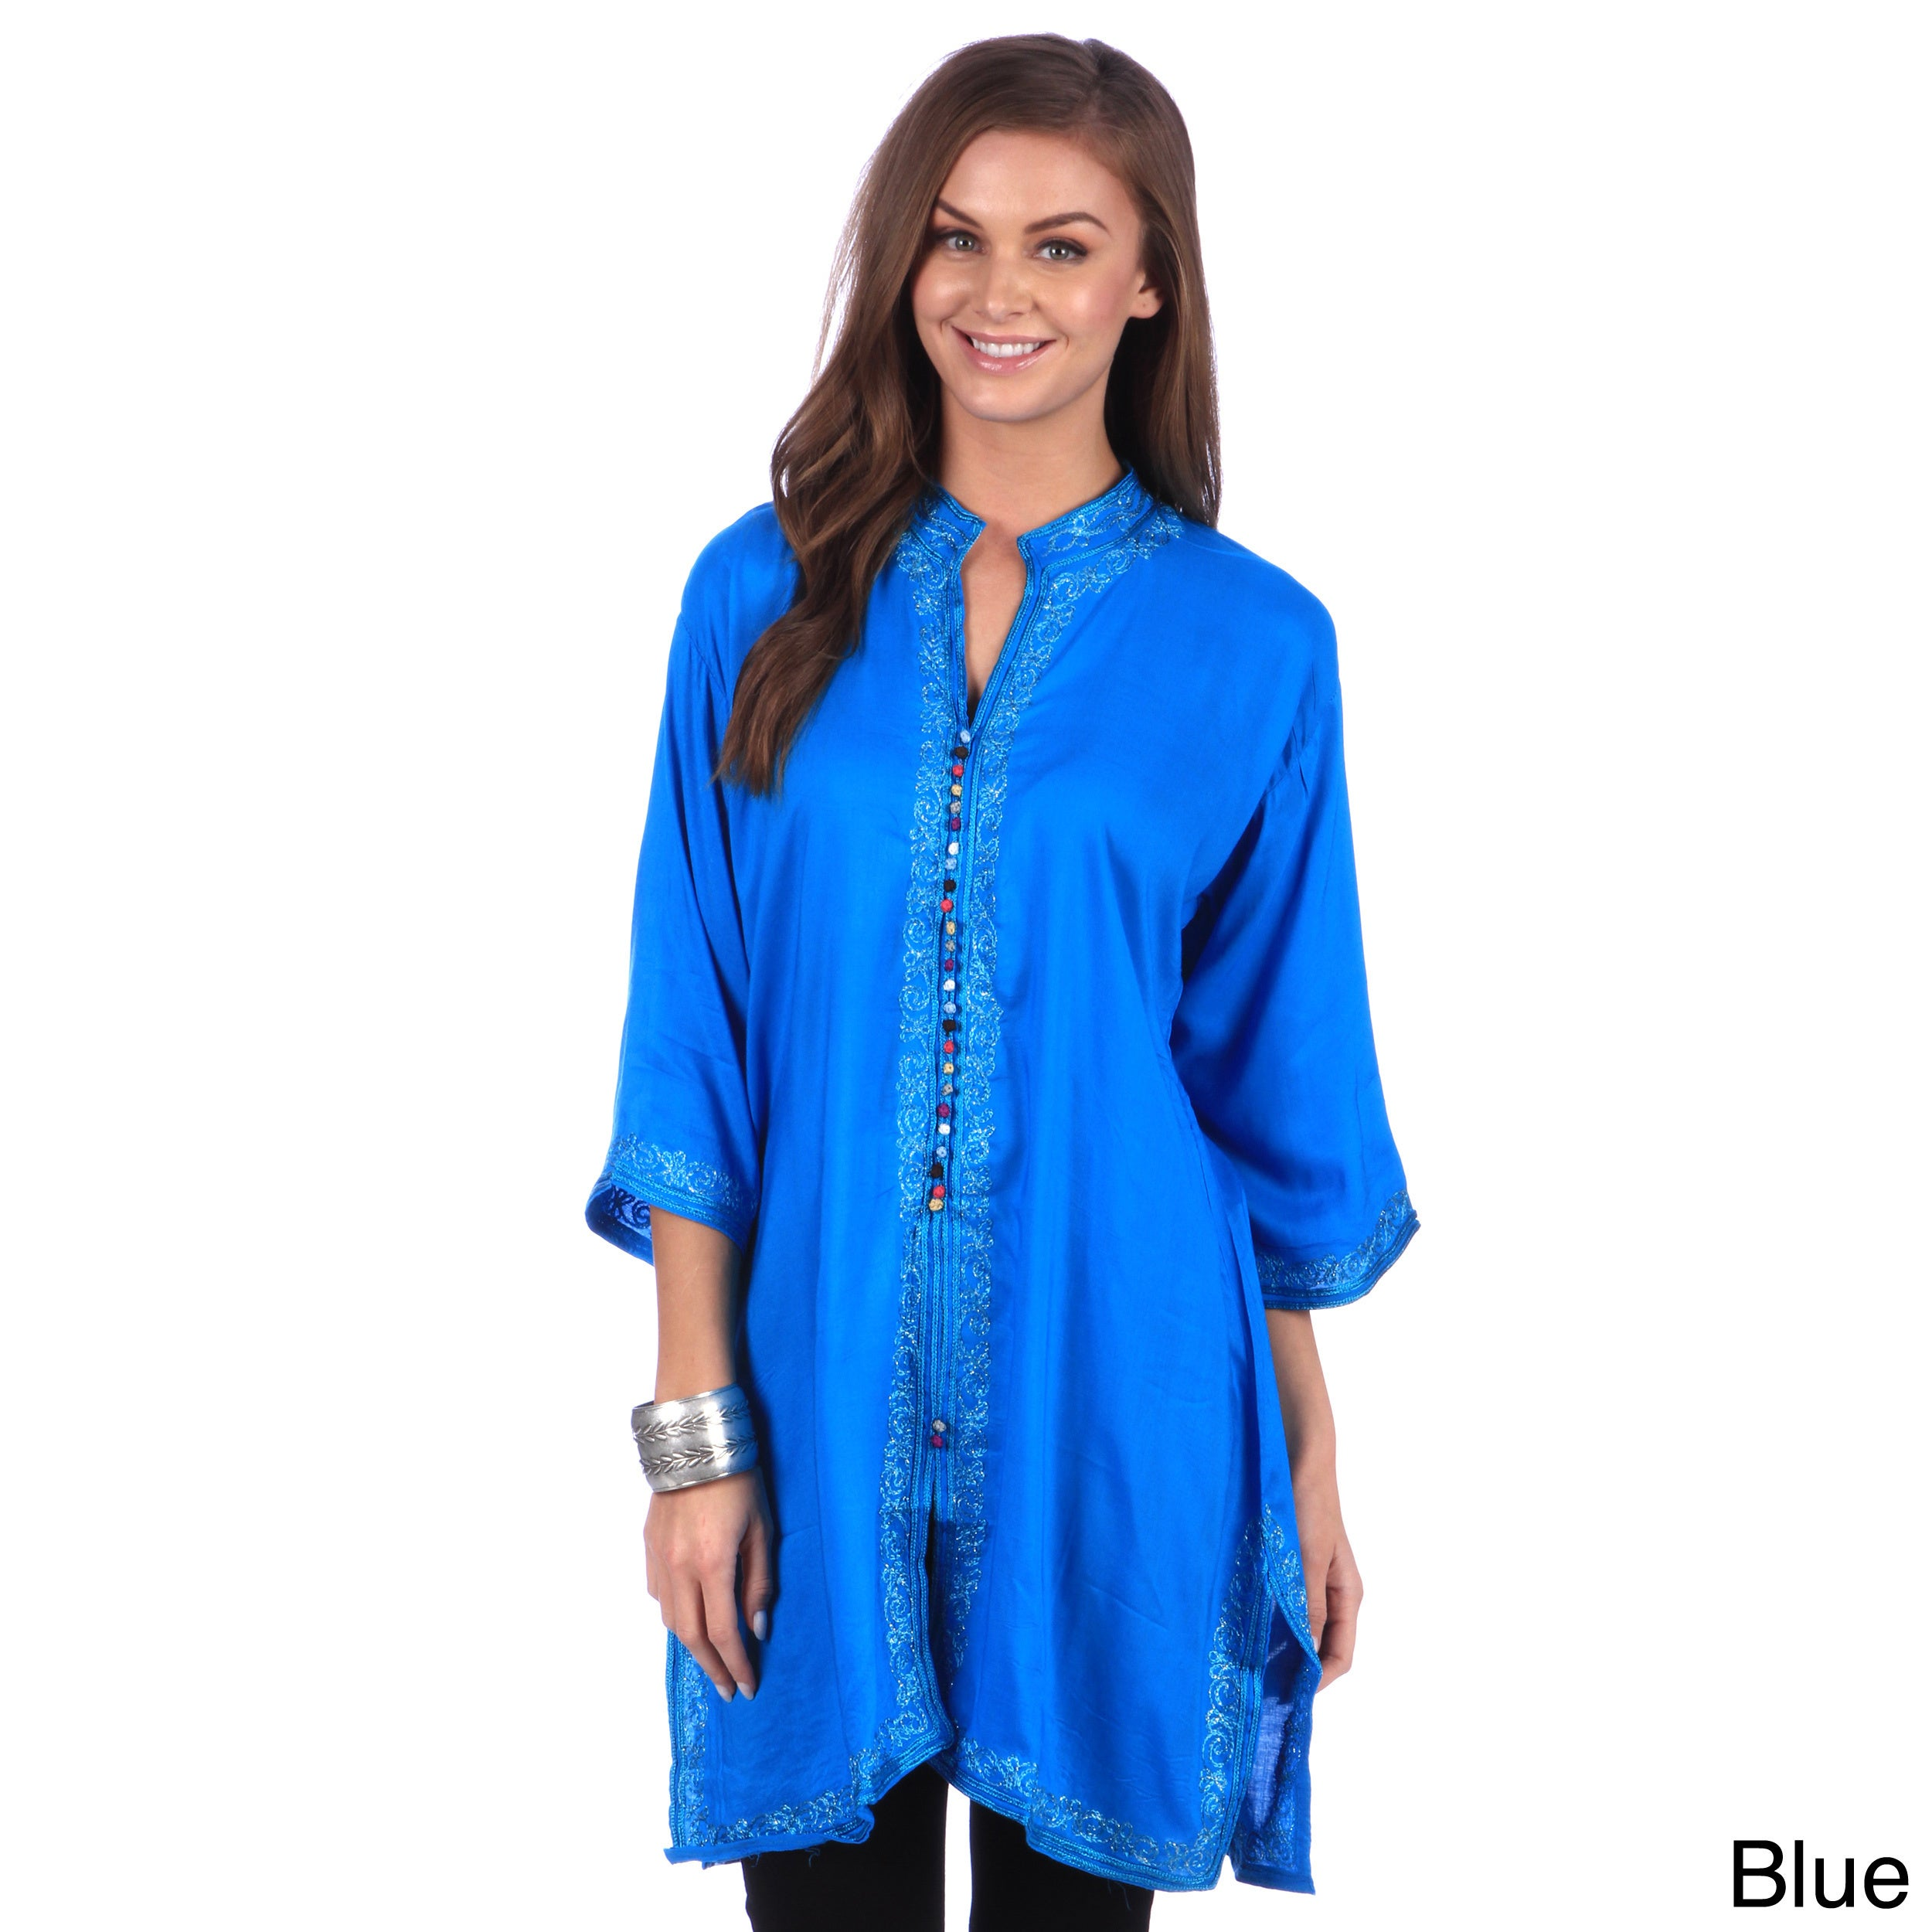 b39a6f7378e09b Shop Handmade Moroccan Women's Bohemian Vintage Colorful Cotton Silk  Embroidered Button Caftan Tunic (Morocco) - Free Shipping On Orders Over  $45 ...